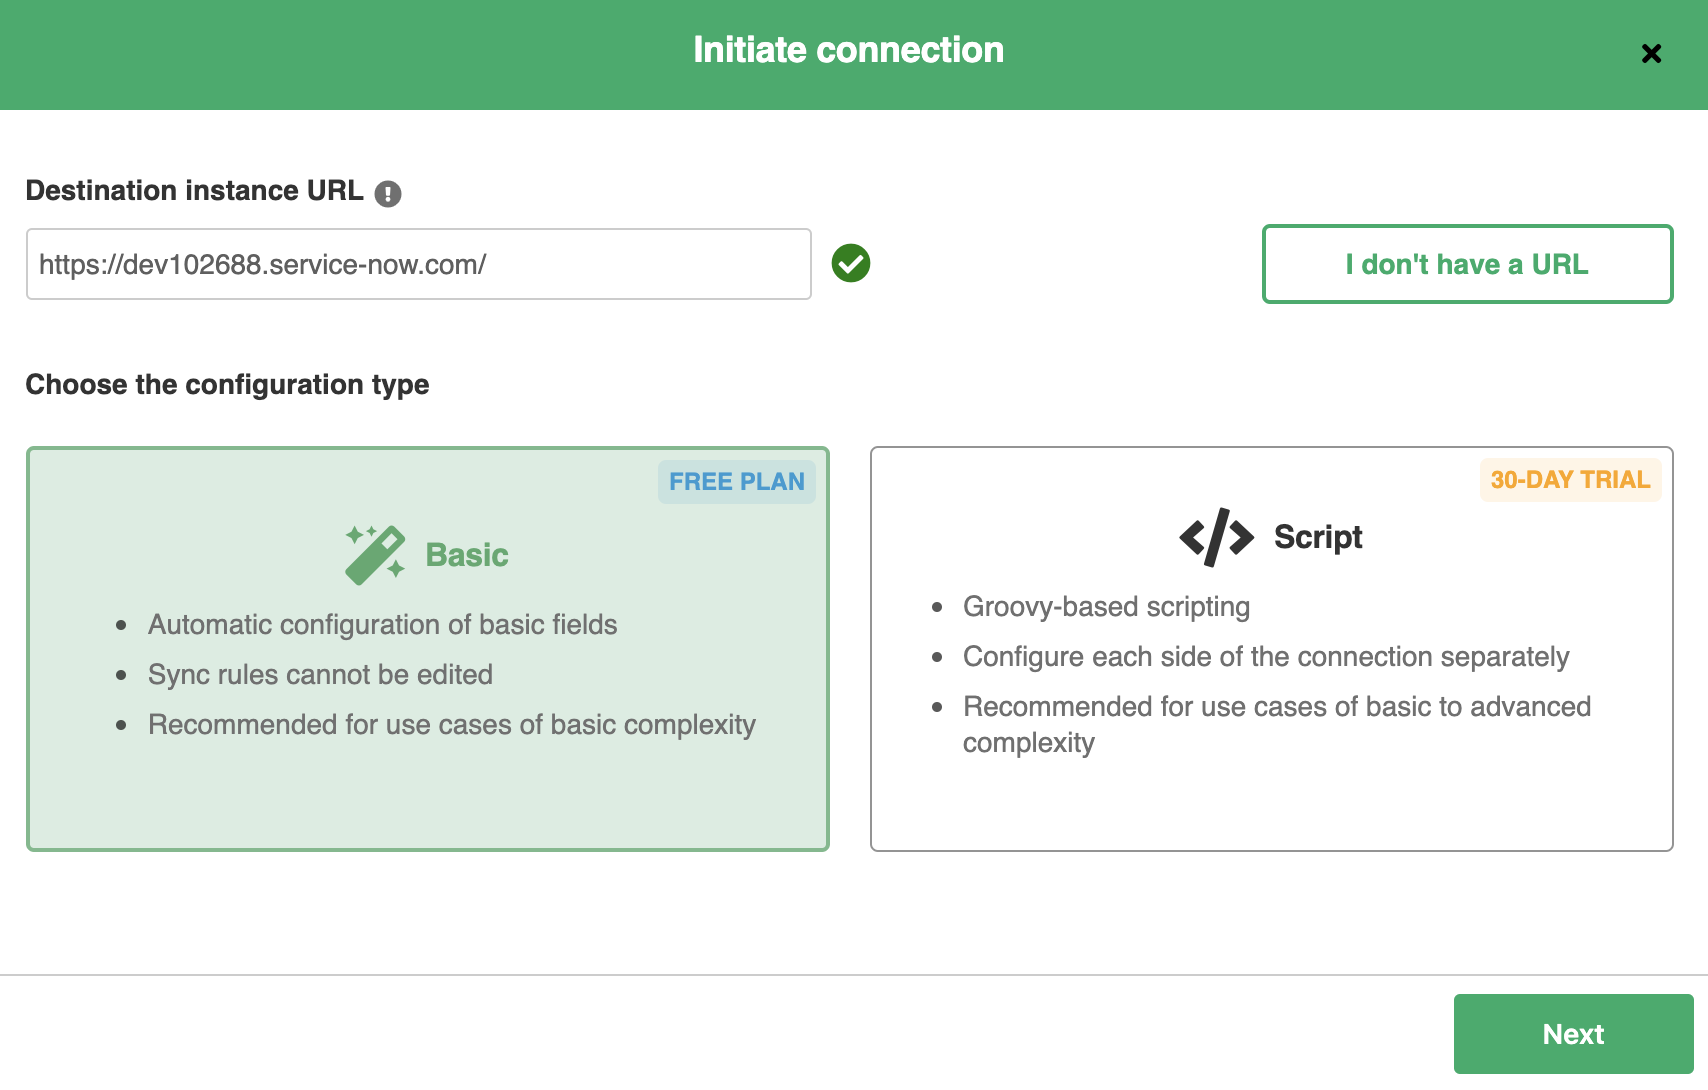 Initiate connection between Github and ServiceNow